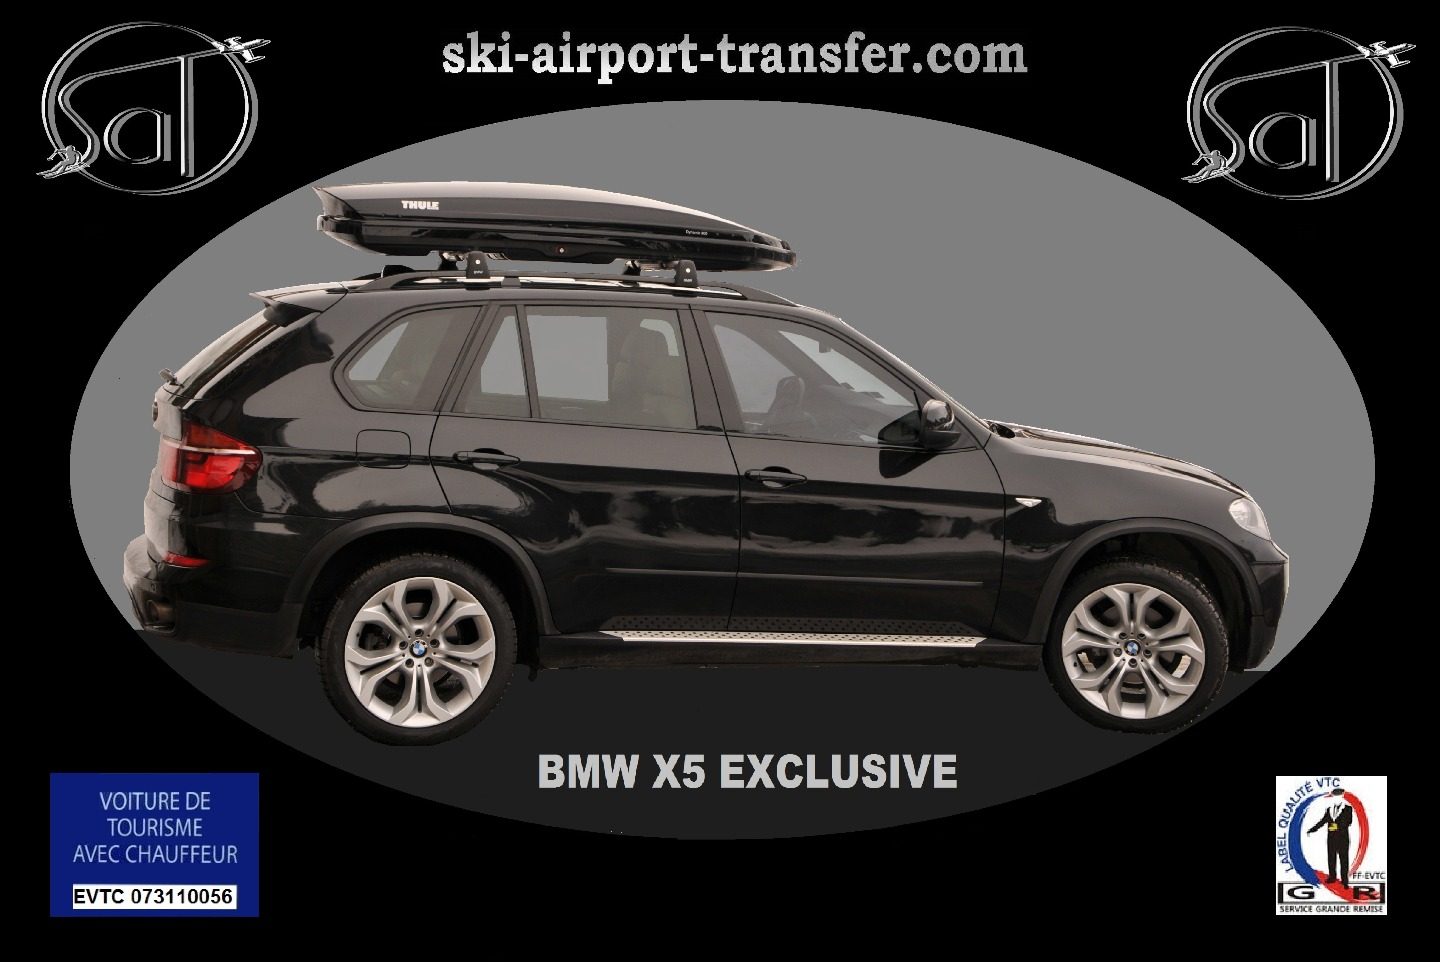 Taxi Saint-Bon-Tarentaise: BMW